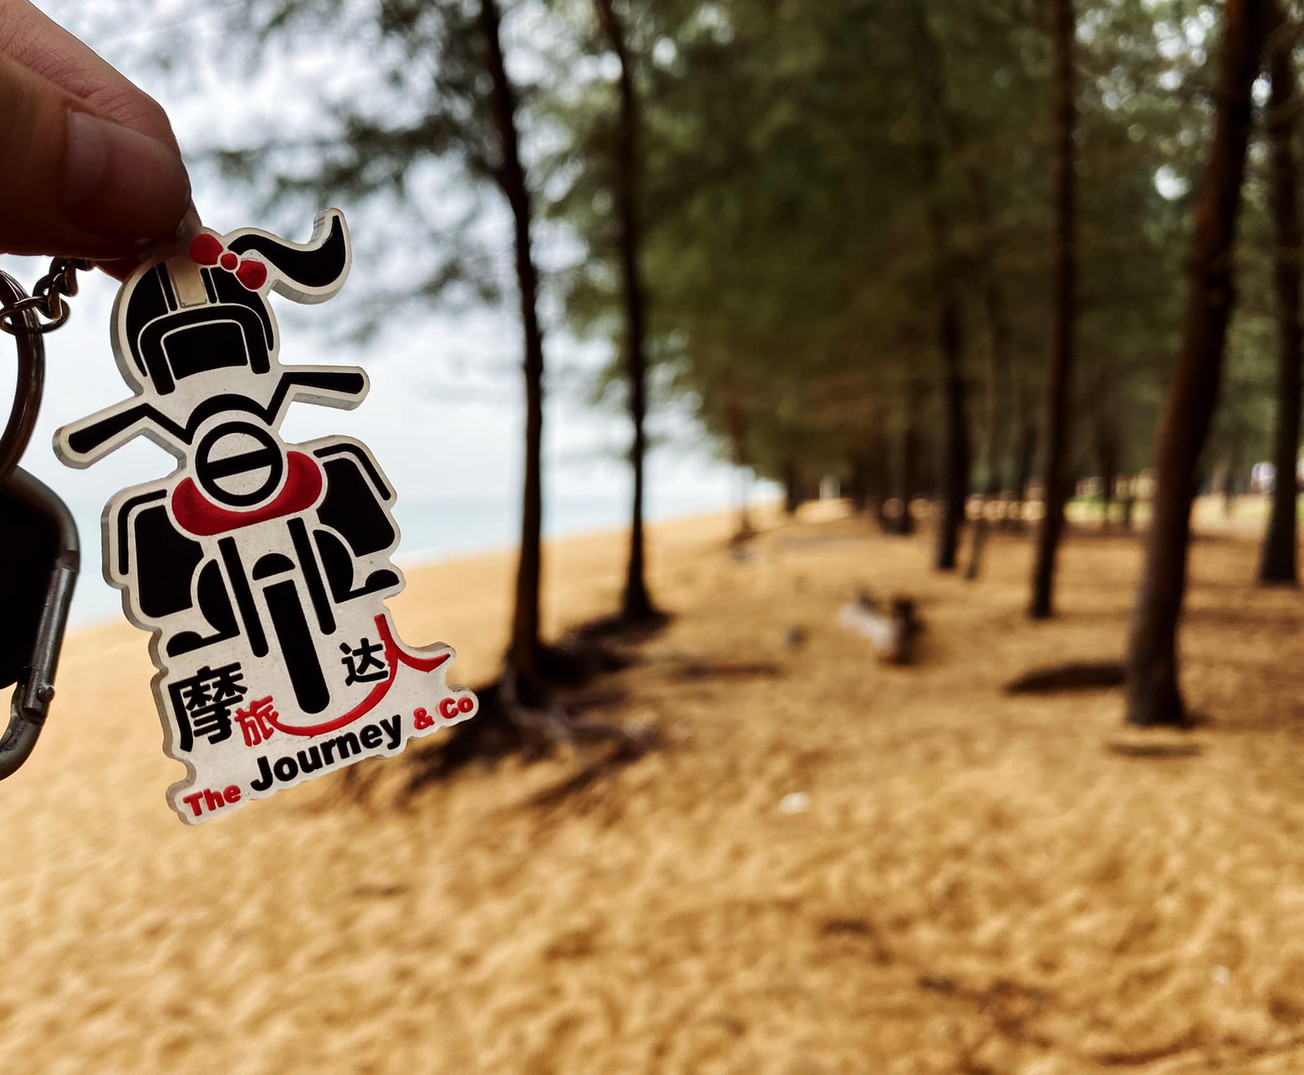 The Journey & Co Keychain